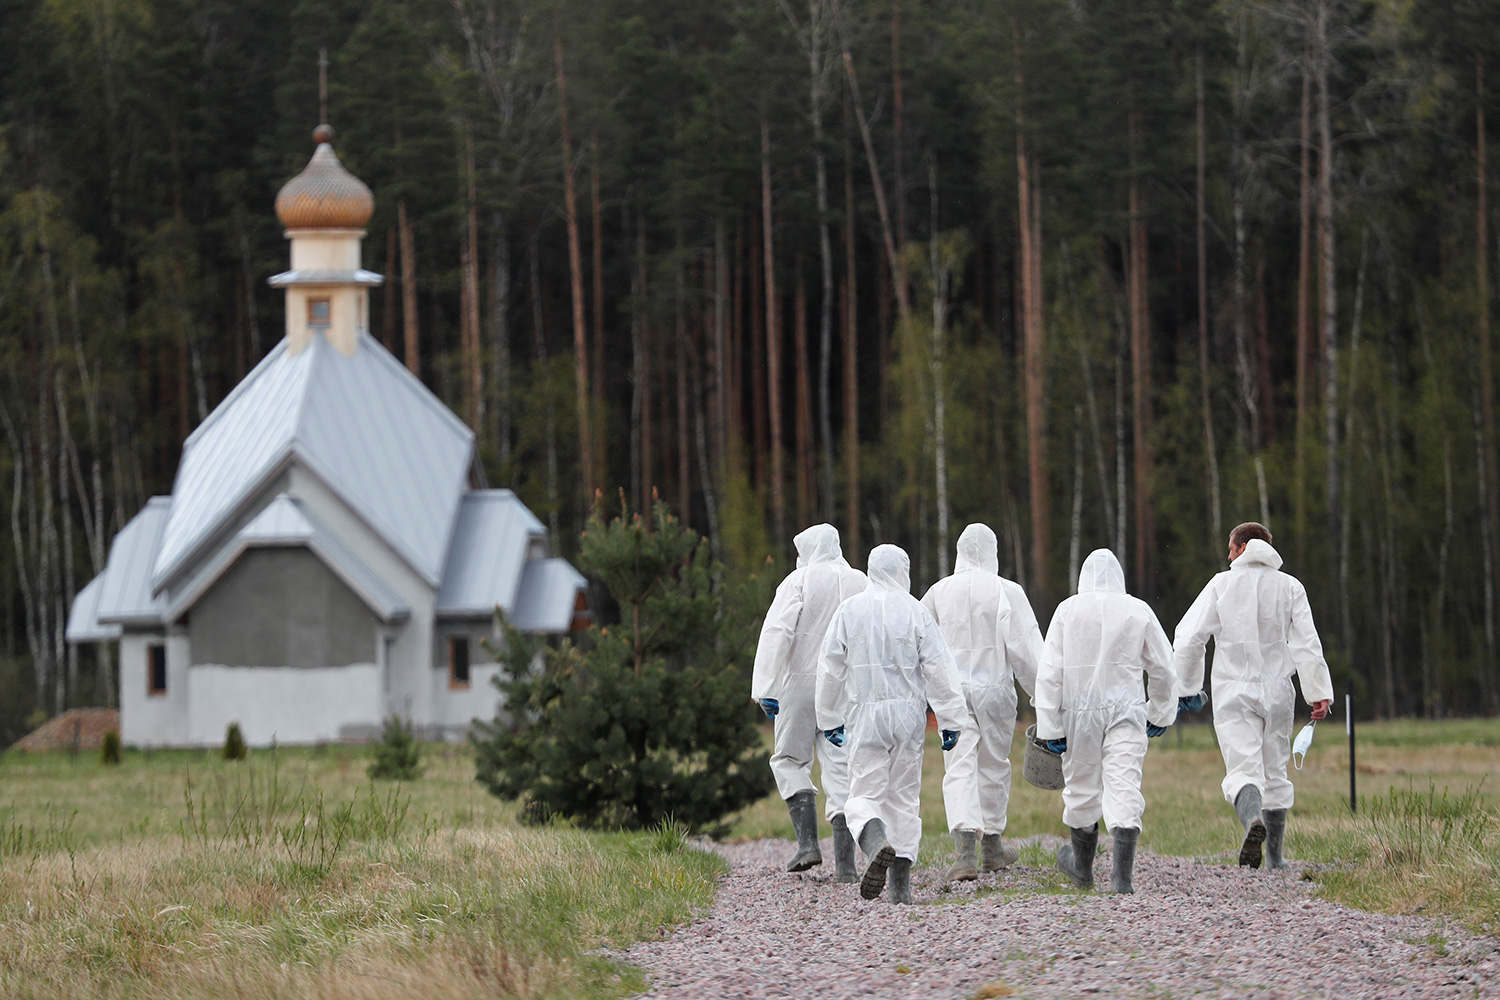 The photo shows a group of grave diggers wearing personal protective equipment walking weith their backs to the camera towards an old church.